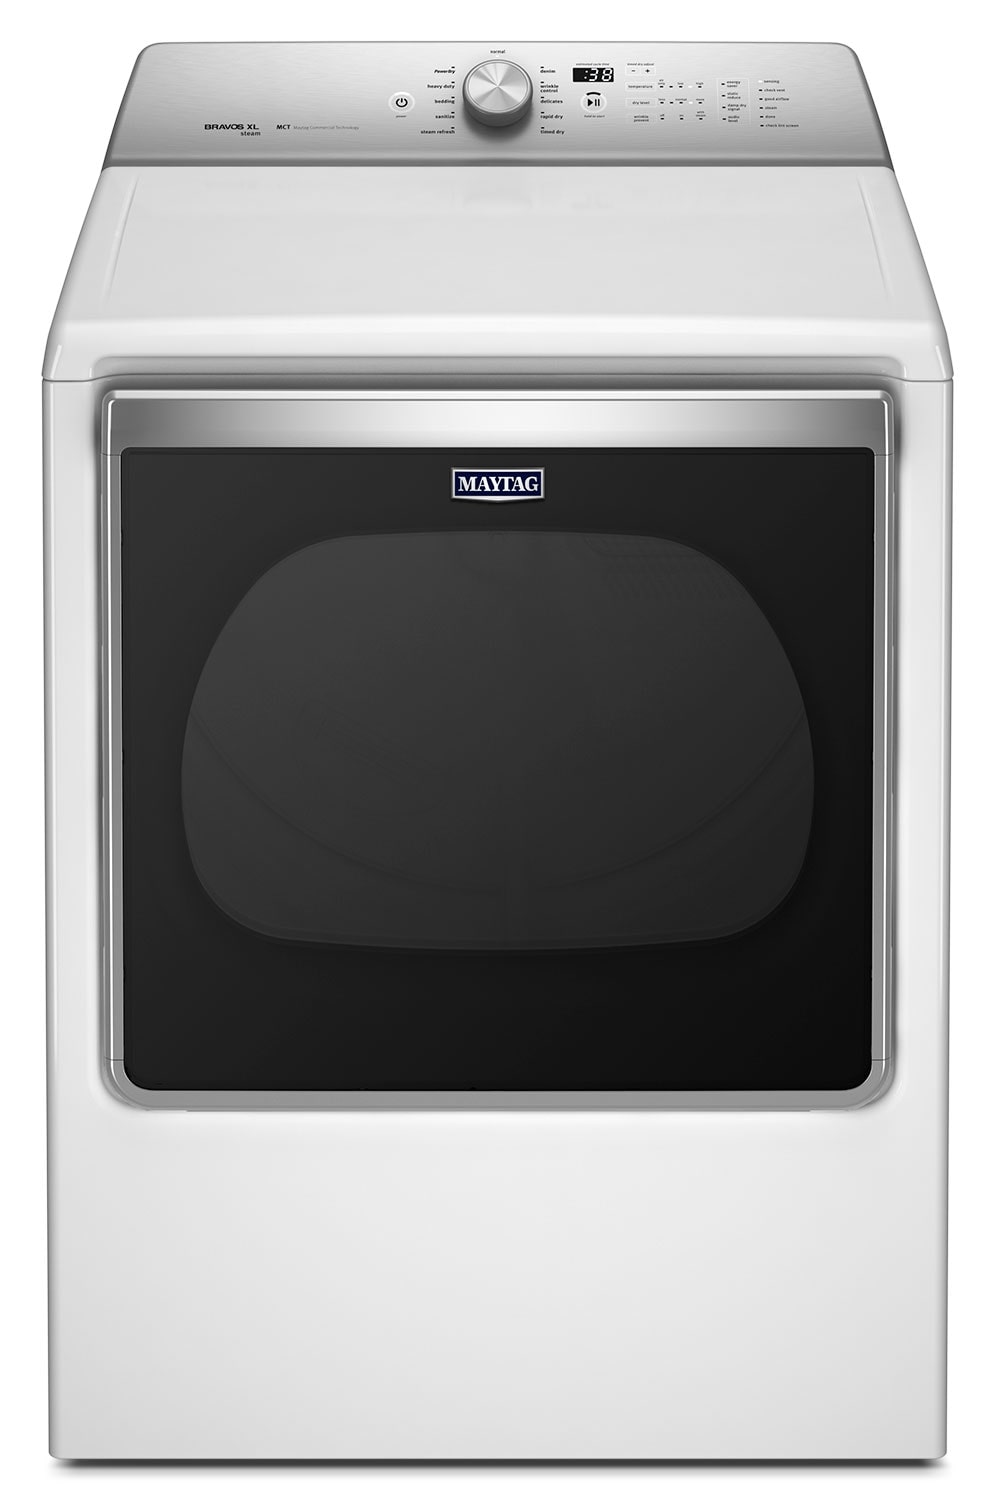 Maytag Gas Dryer (8.8 Cu. Ft.) MGDB855DW